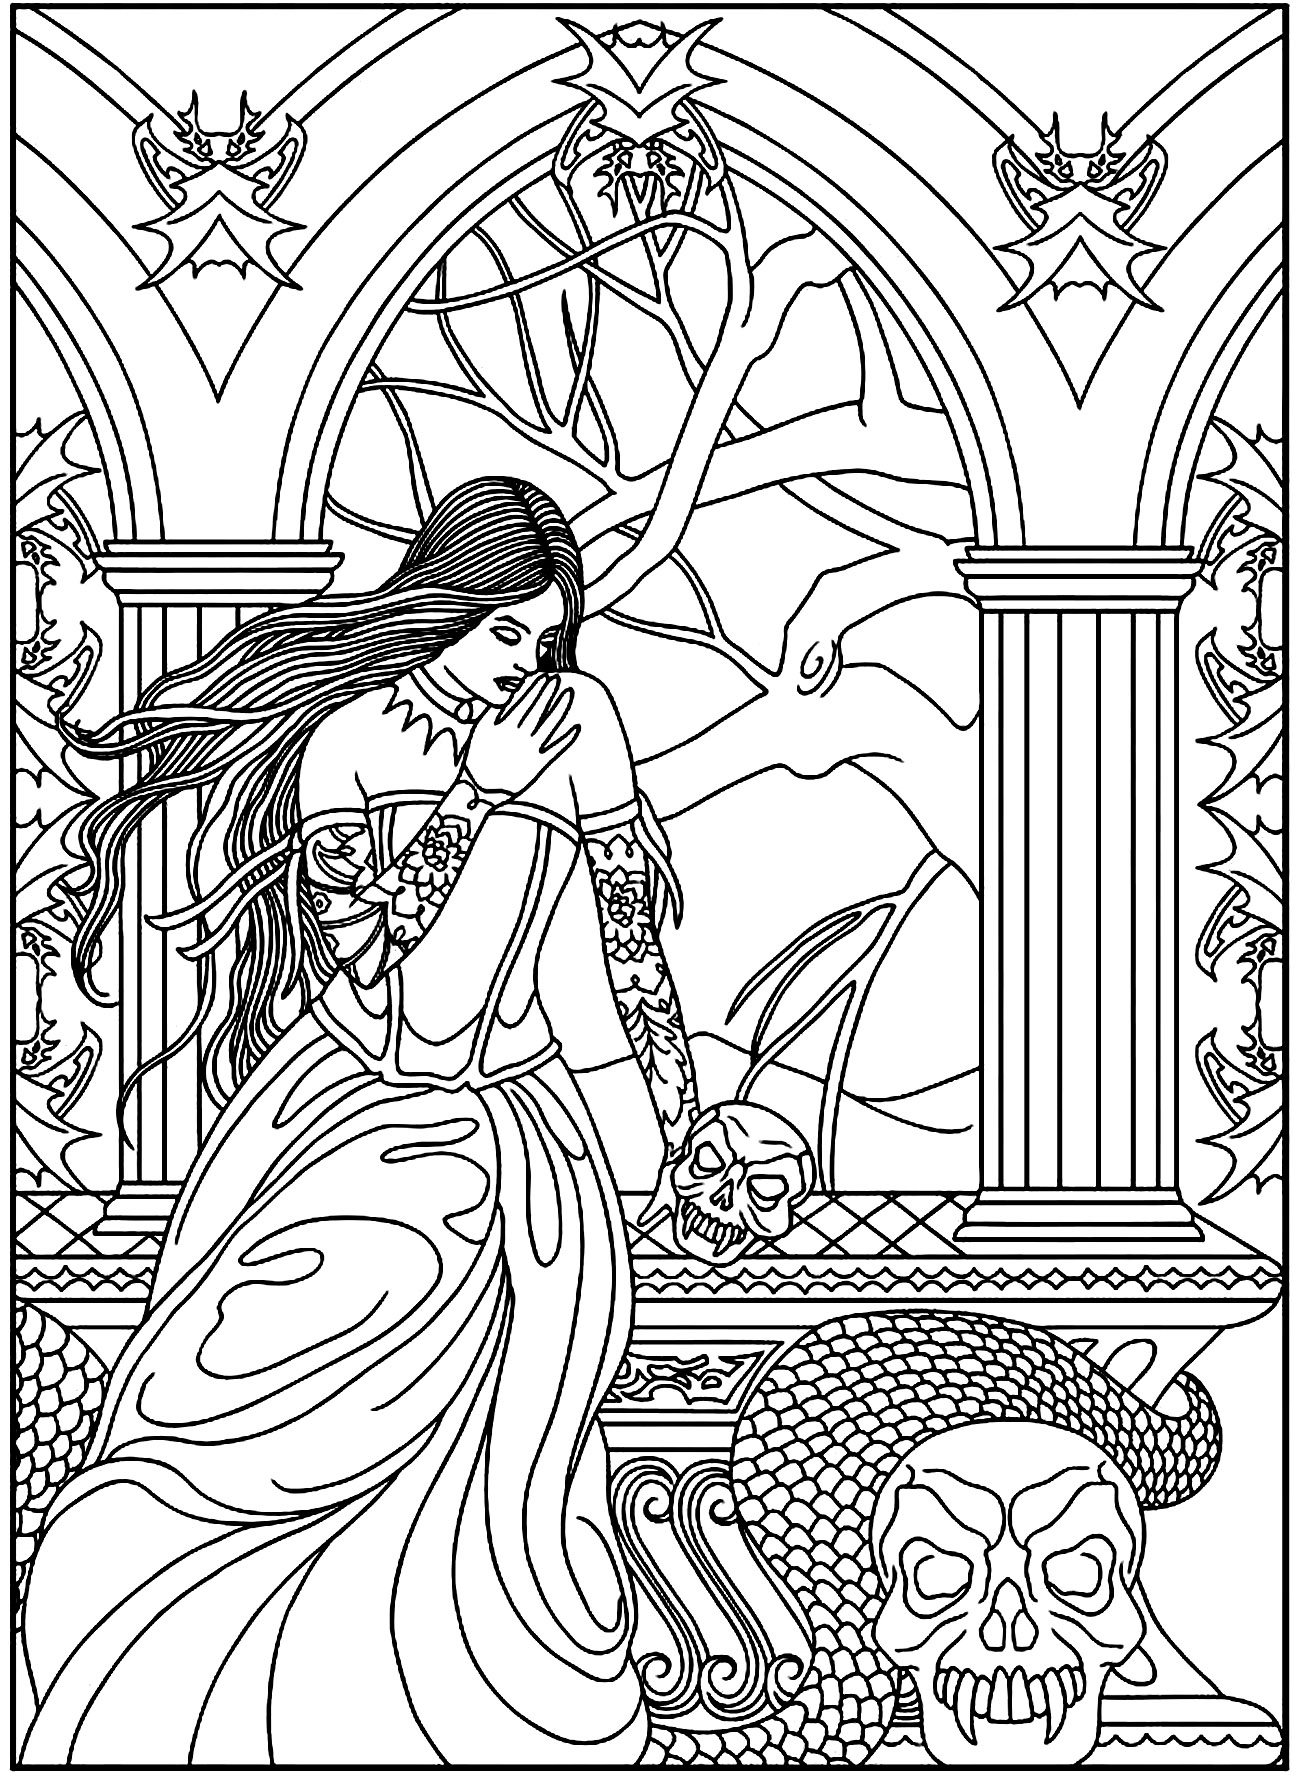 Fantasy woman skulls snake - Myths & legends - Coloring pages for adults